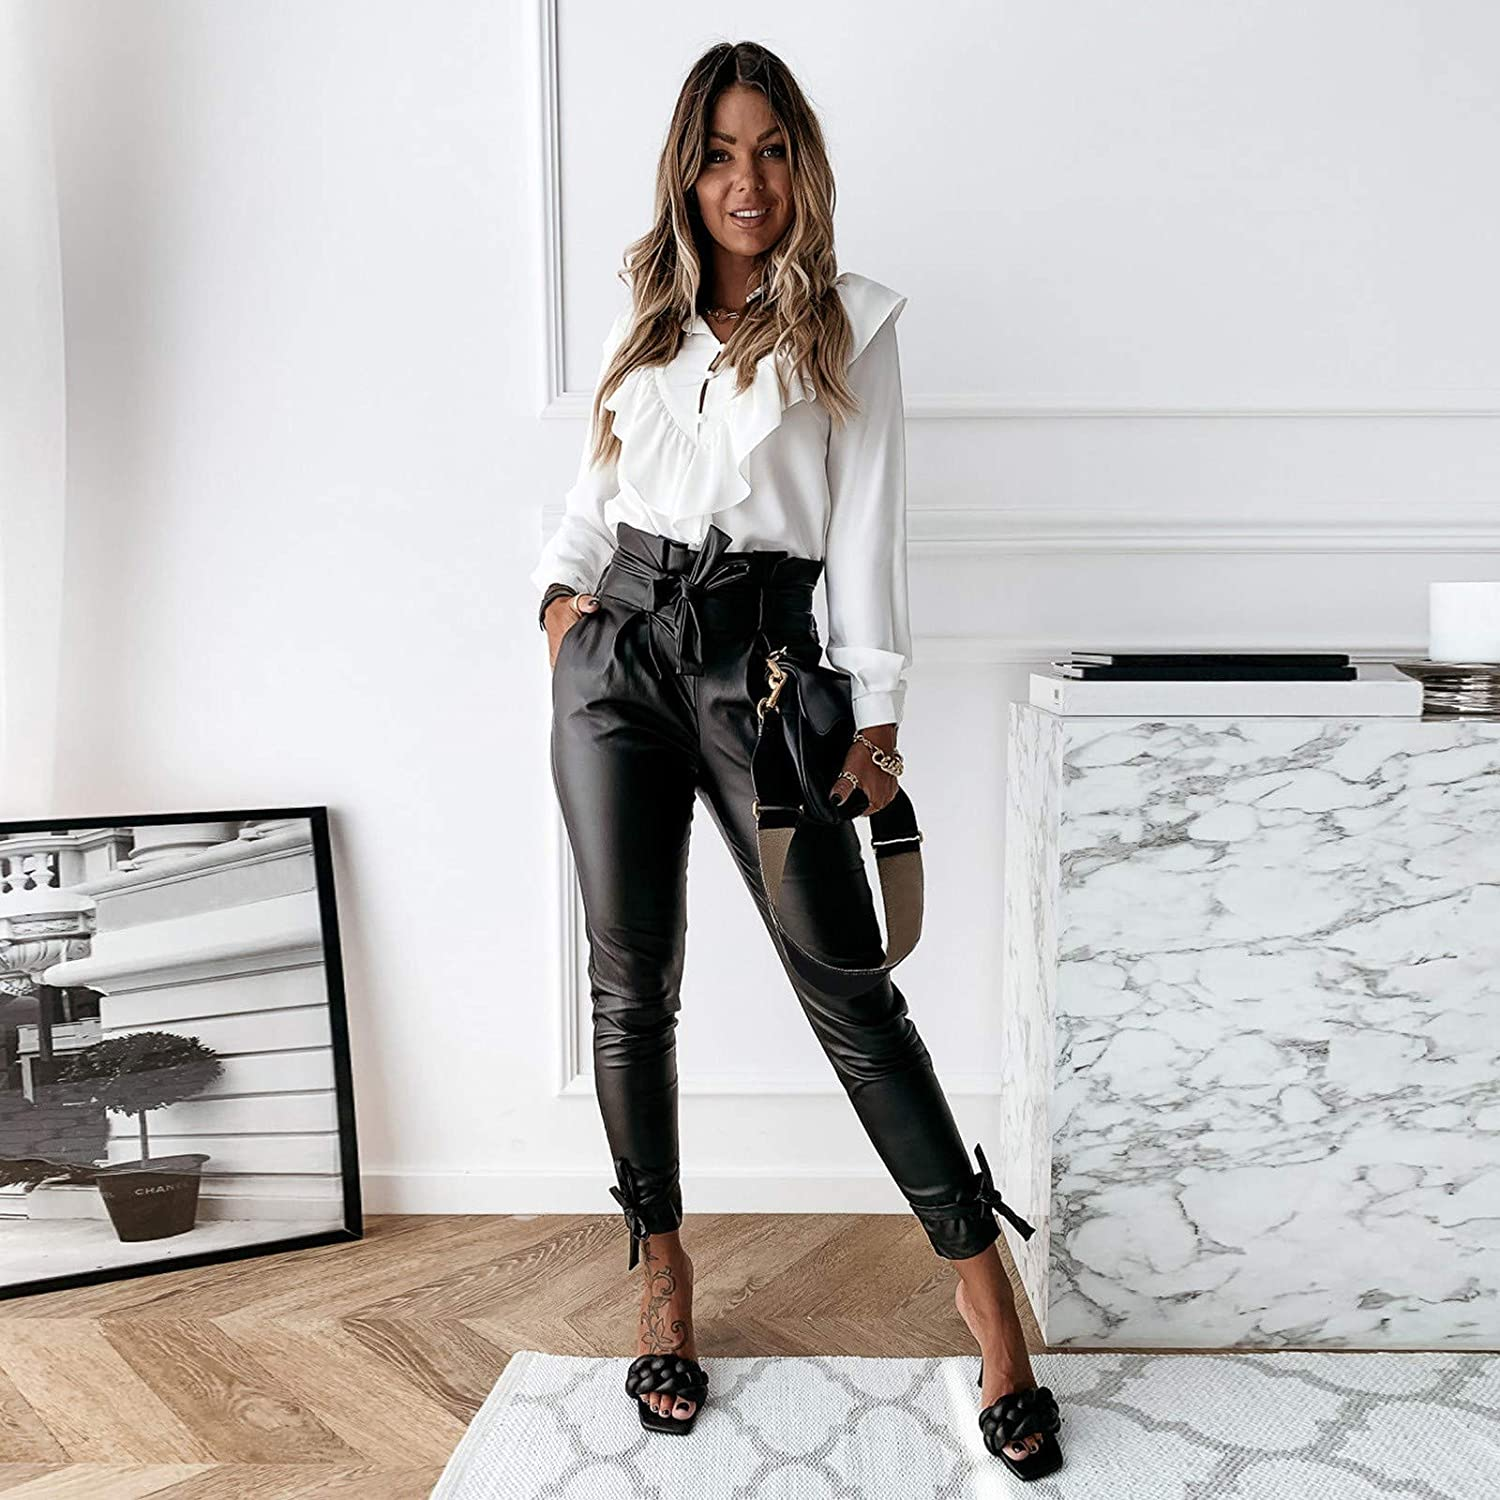 UpdateClassic Women Wear to Work Tight Pants High Waist Leather Pants with Large Fold Bow Womens Skinny Pants for Work